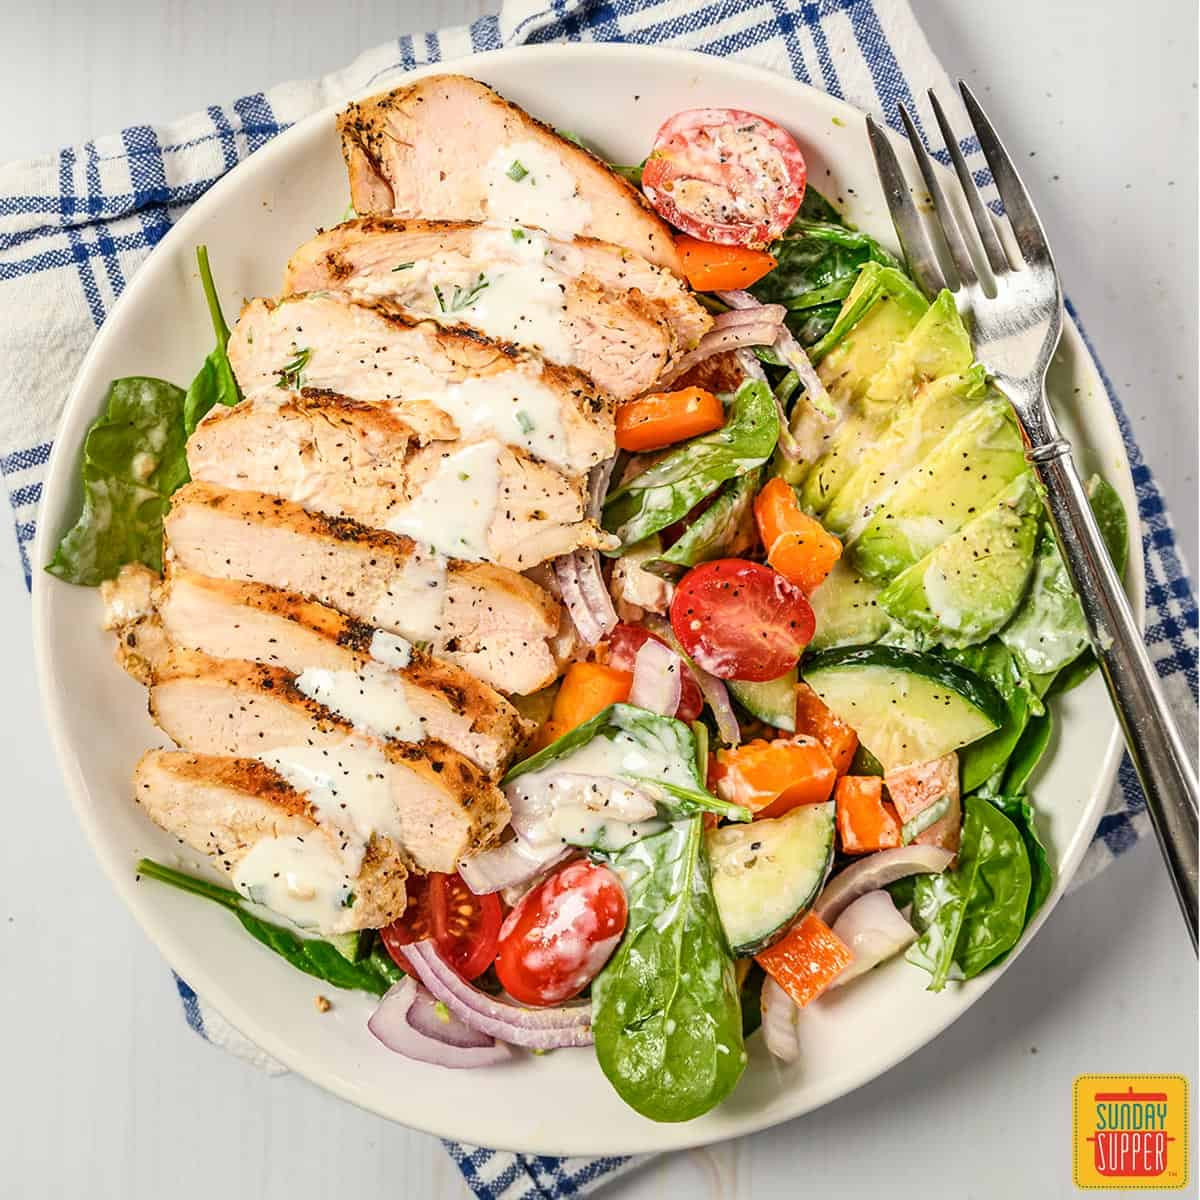 Slices of grilled chicken on a salad with buttermilk ranch dressing and a fork